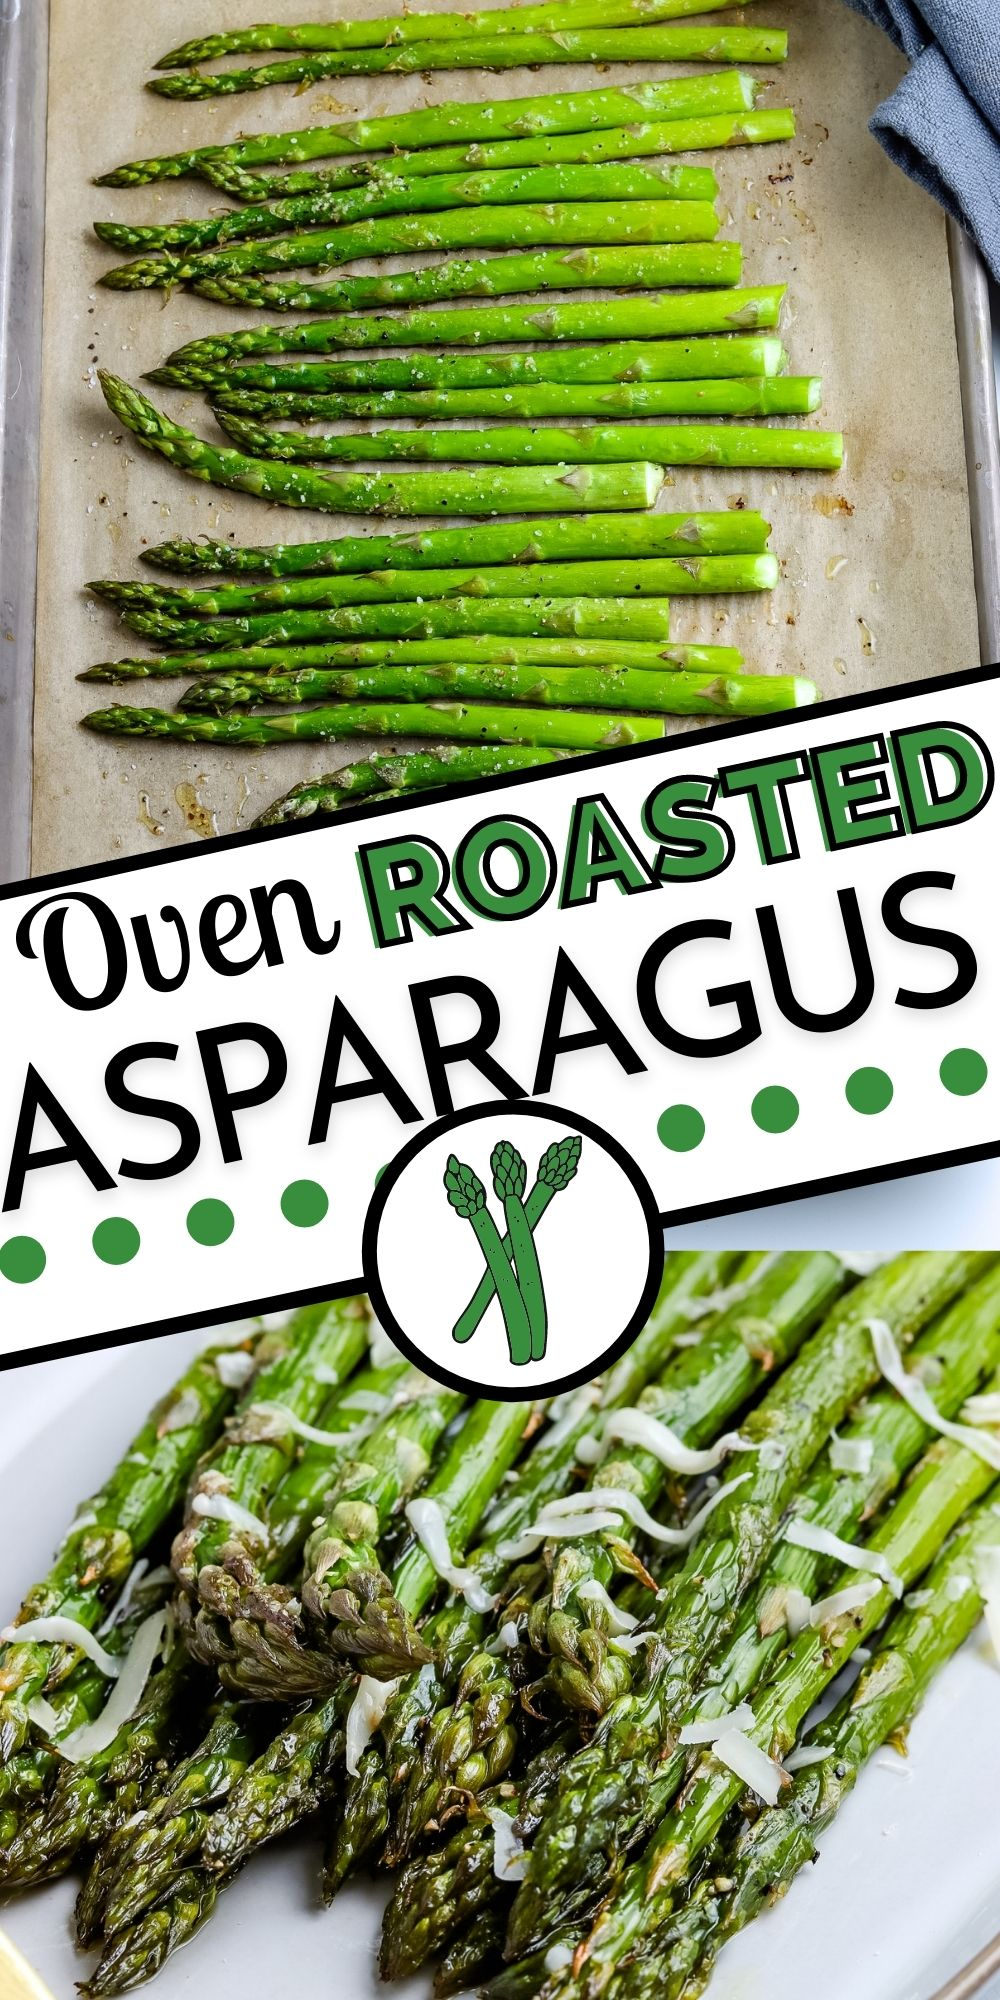 Making asparagus in the oven takes just 20 minutes total. It's an easy and delicious side dish that's perfect for spring and Easter dinner. via @easybudgetrecipes